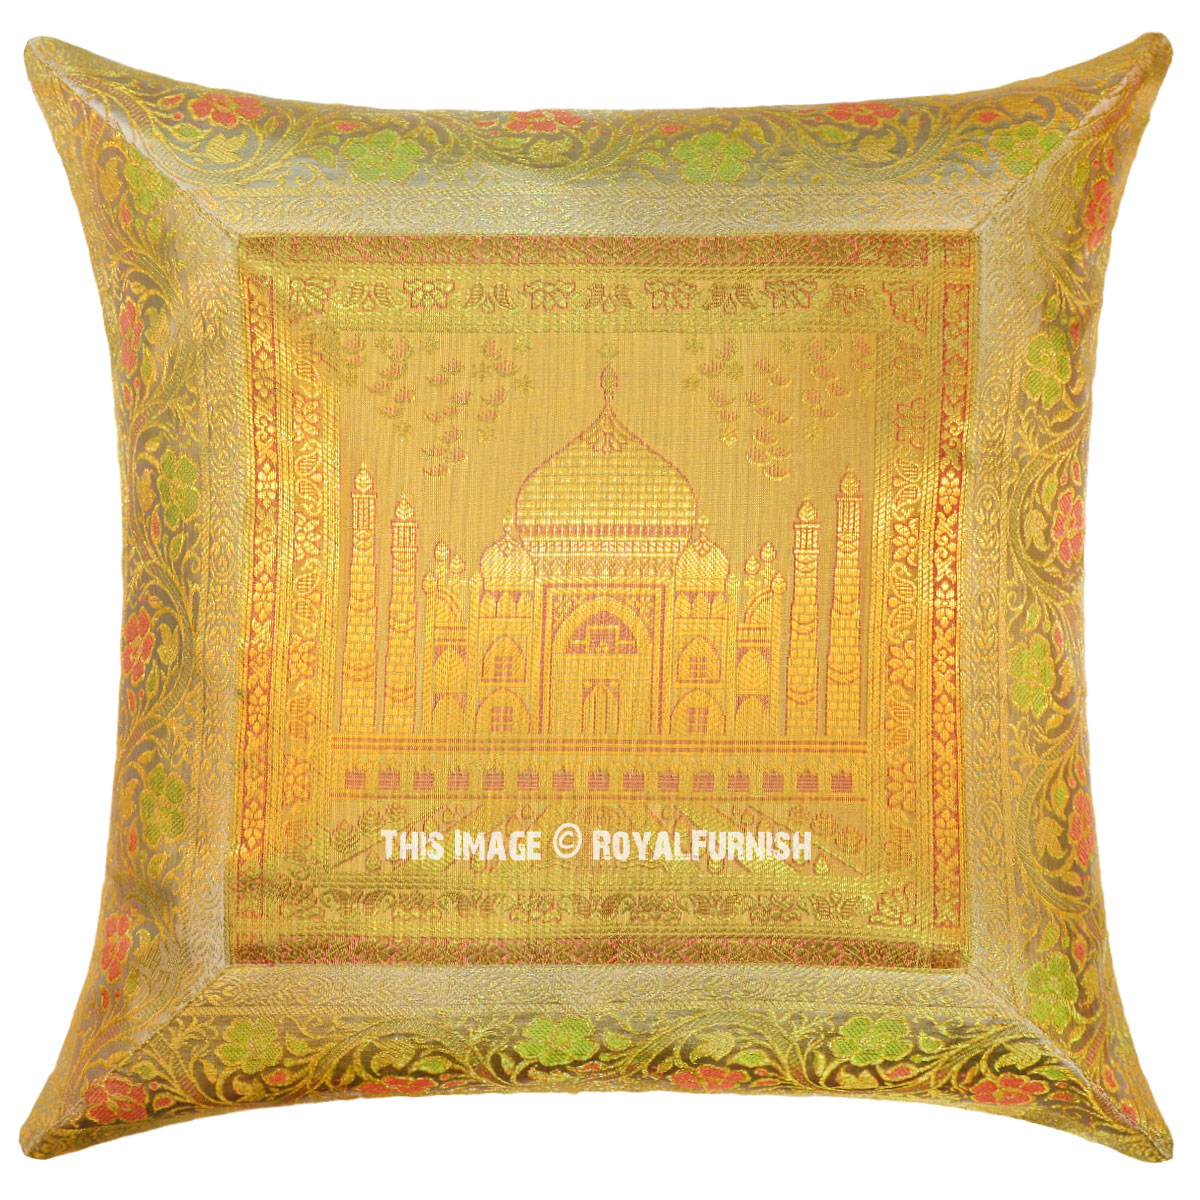 Yellow Silk Decorative Pillows : Yellow Color Decorative Tajmahal Silk Brocade Throw Pillow Cover 16X16 - RoyalFurnish.com